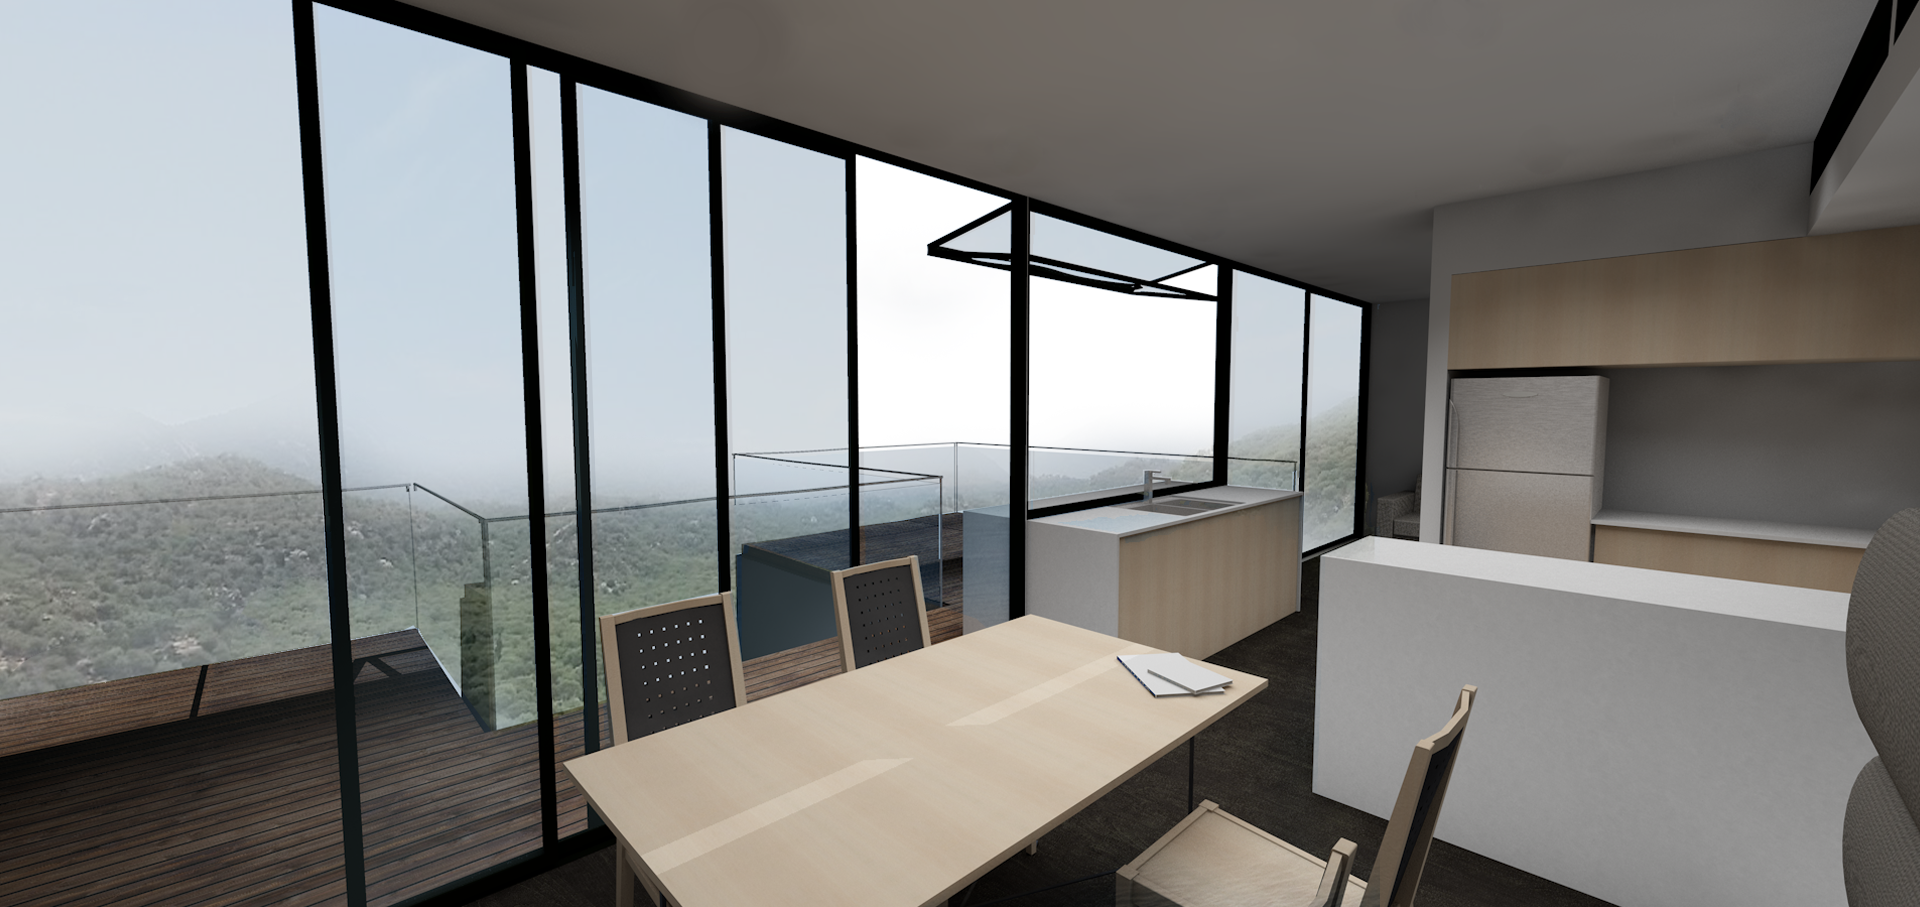 completed-render-2